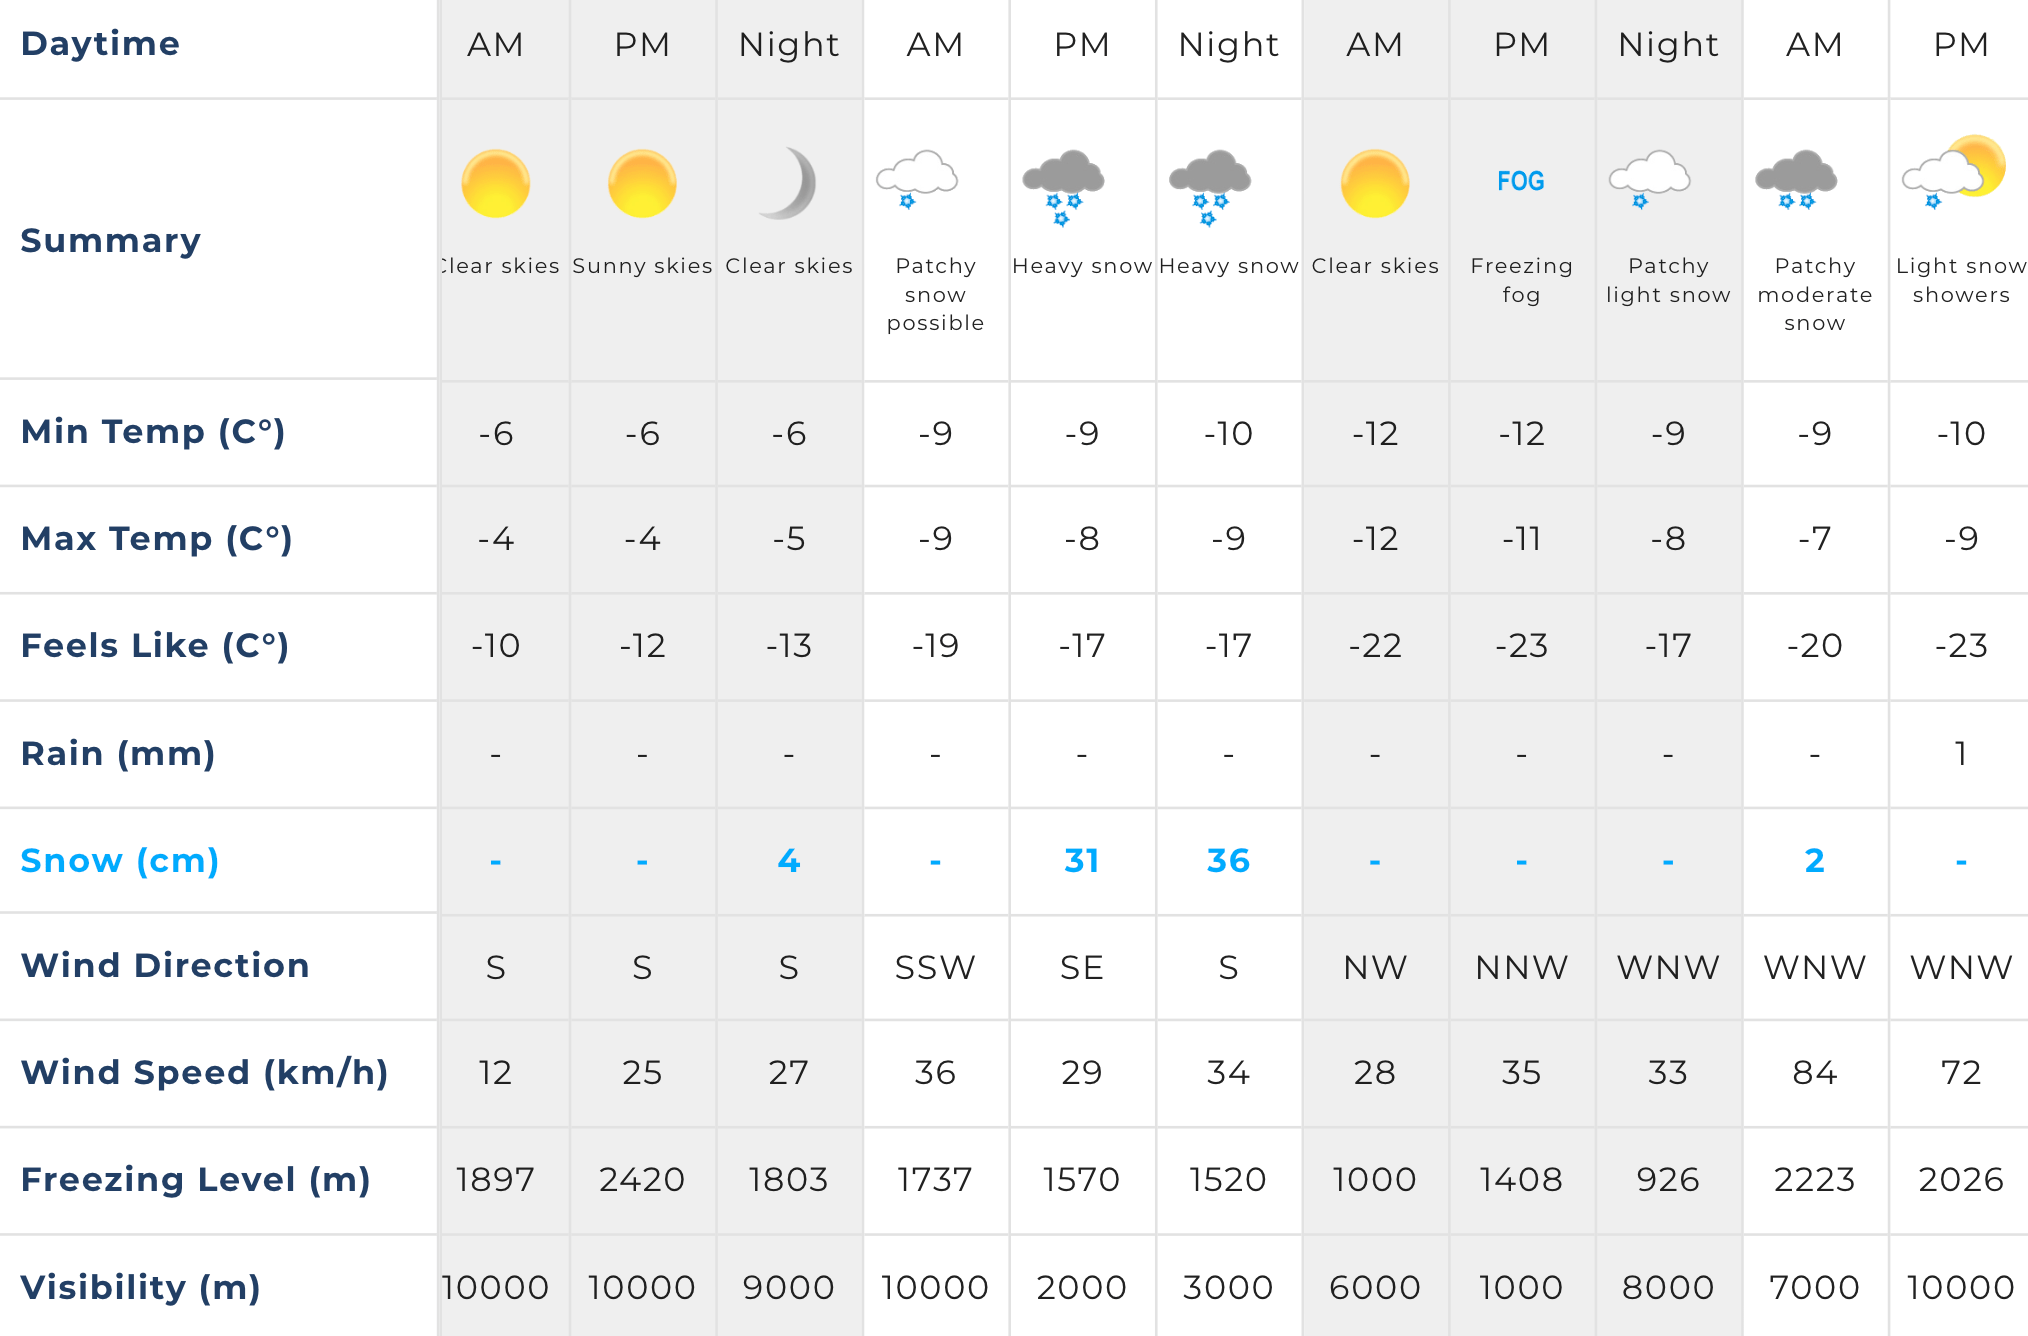 Screen shot of weather forecast for Alpe d'Huez, Dec 13, 2019